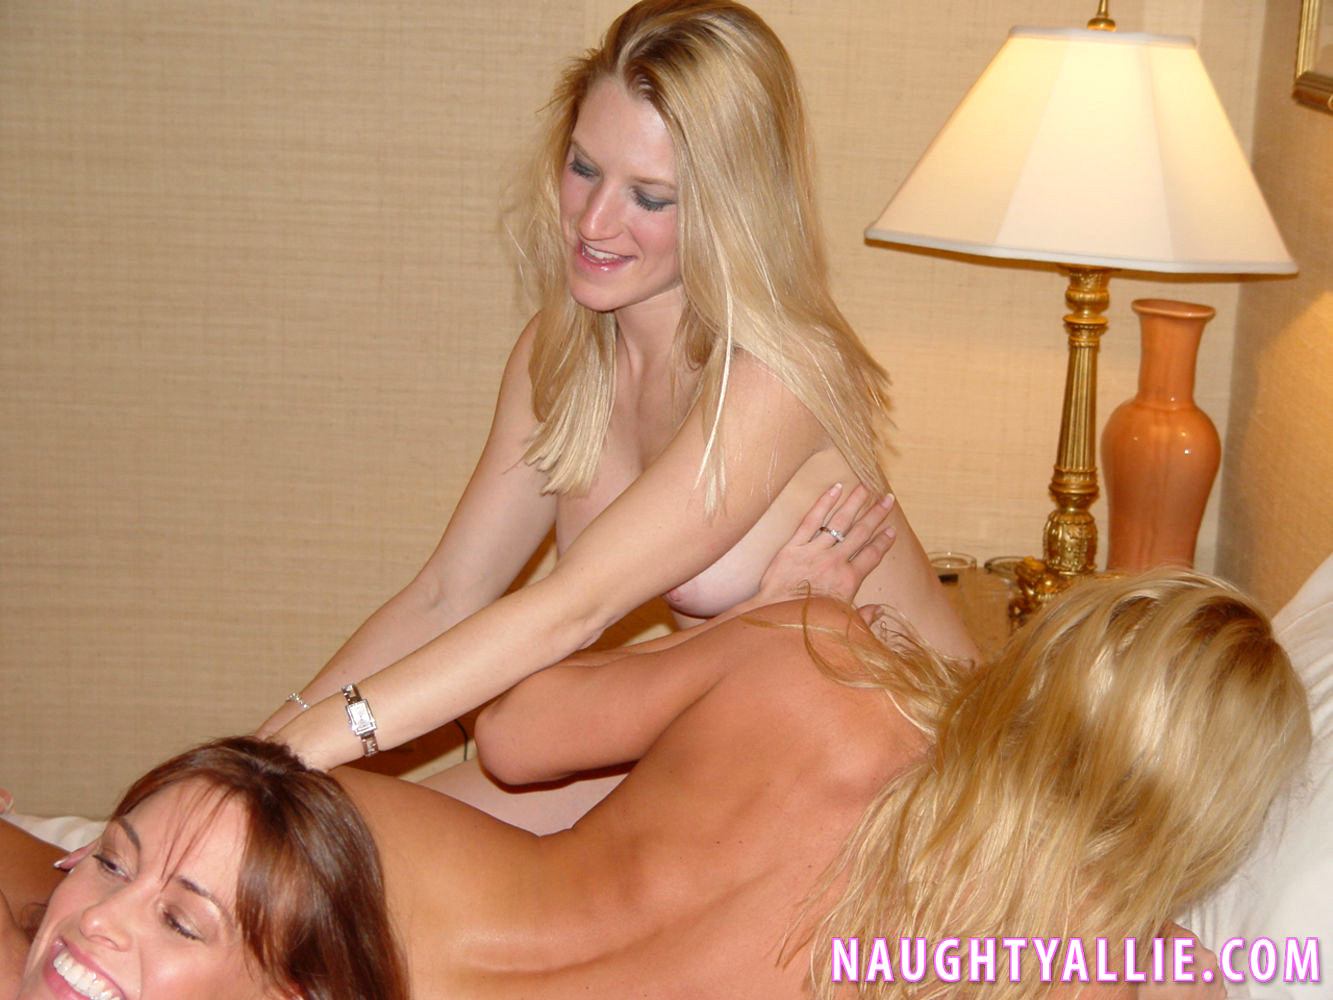 naughty allie sex party